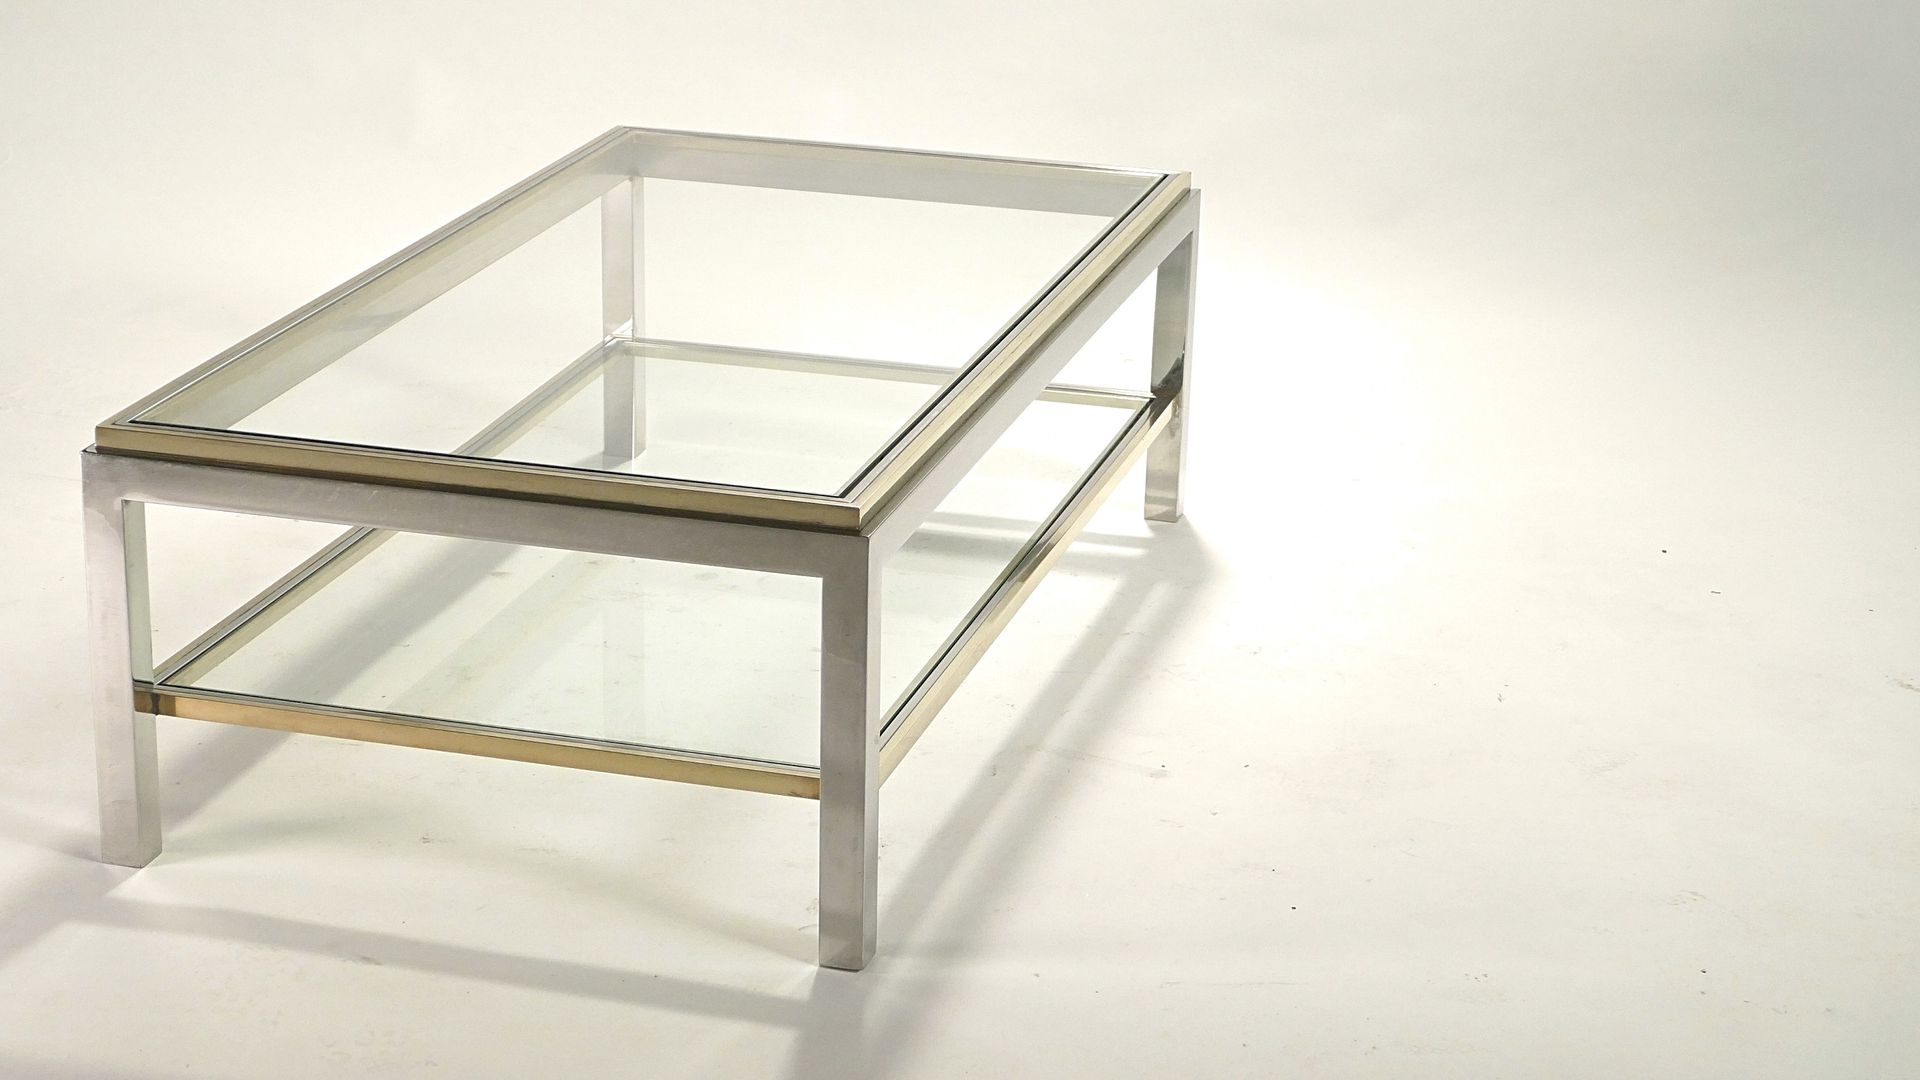 Vintage Flaminia Coffee Table By Willy Rizzo 1970s For Sale At Pamono